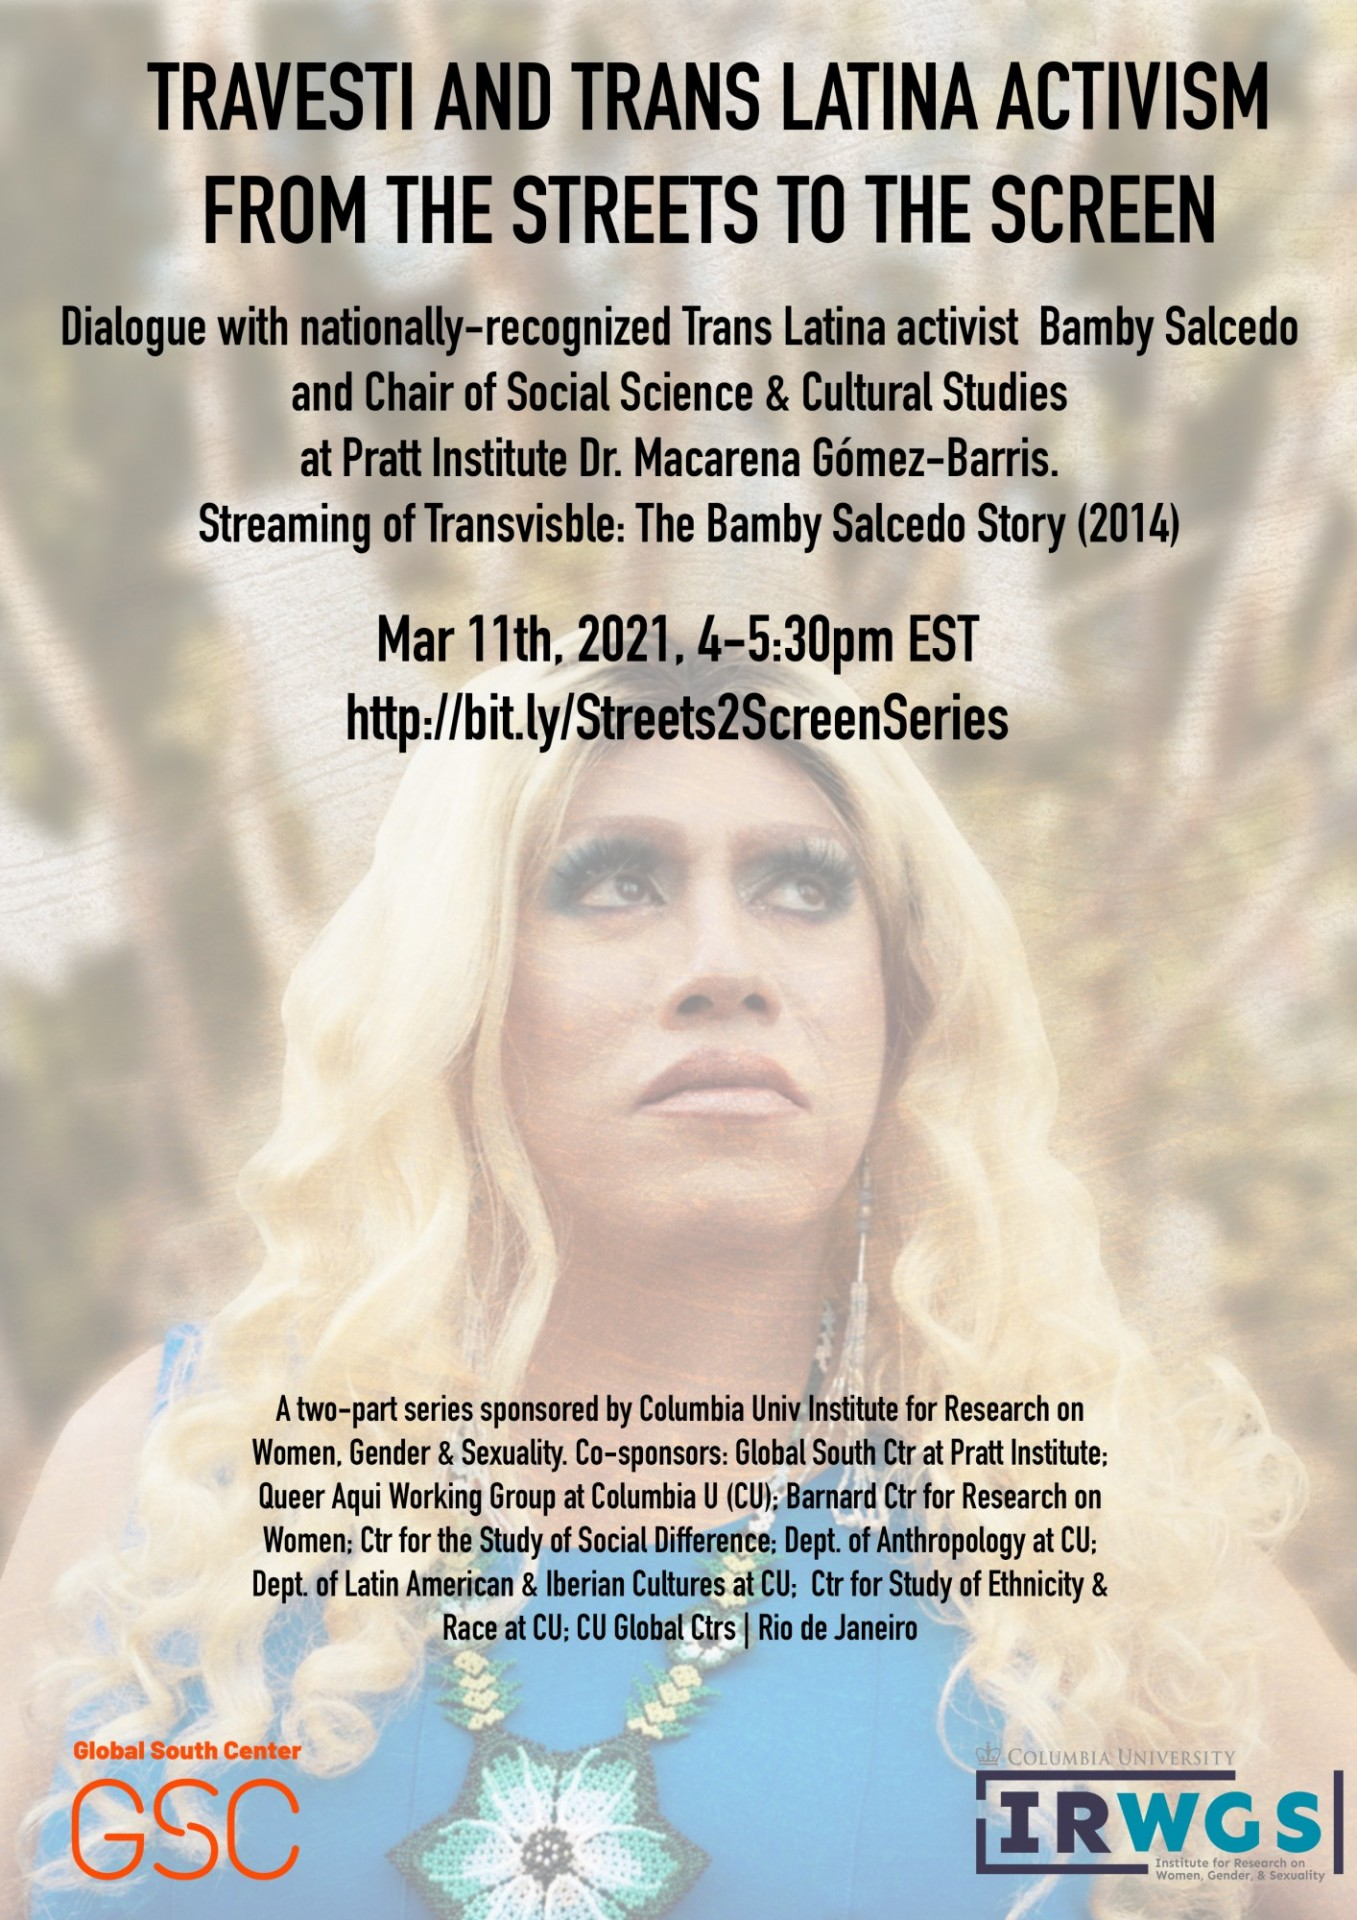 Flyer from March 11th Travesti and Trans Latina Activism - From the Streets to the Screen - Bamby Salcedo